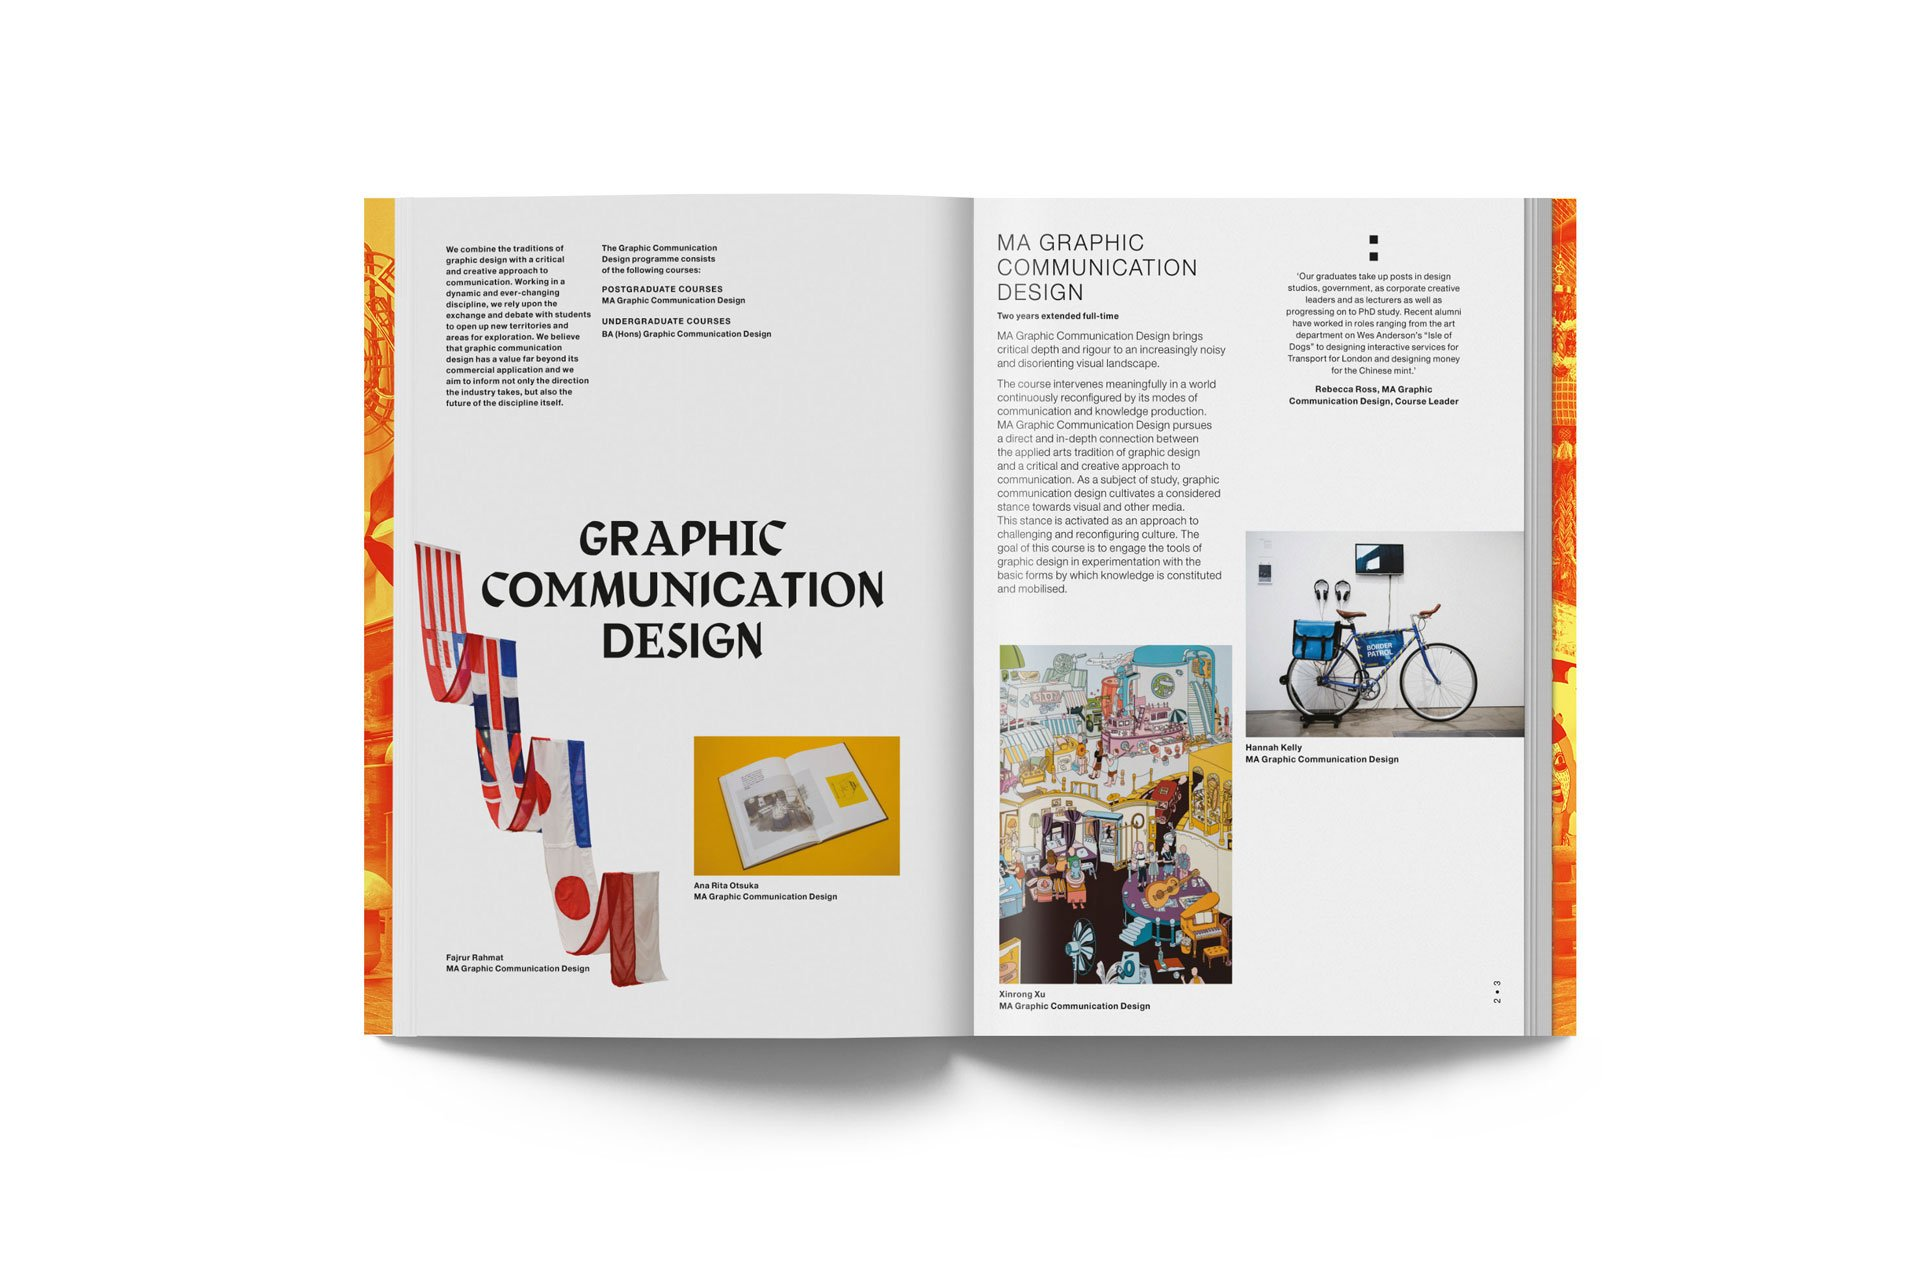 Postgraduate studies at Central Saint Martins. 2nd edition 18